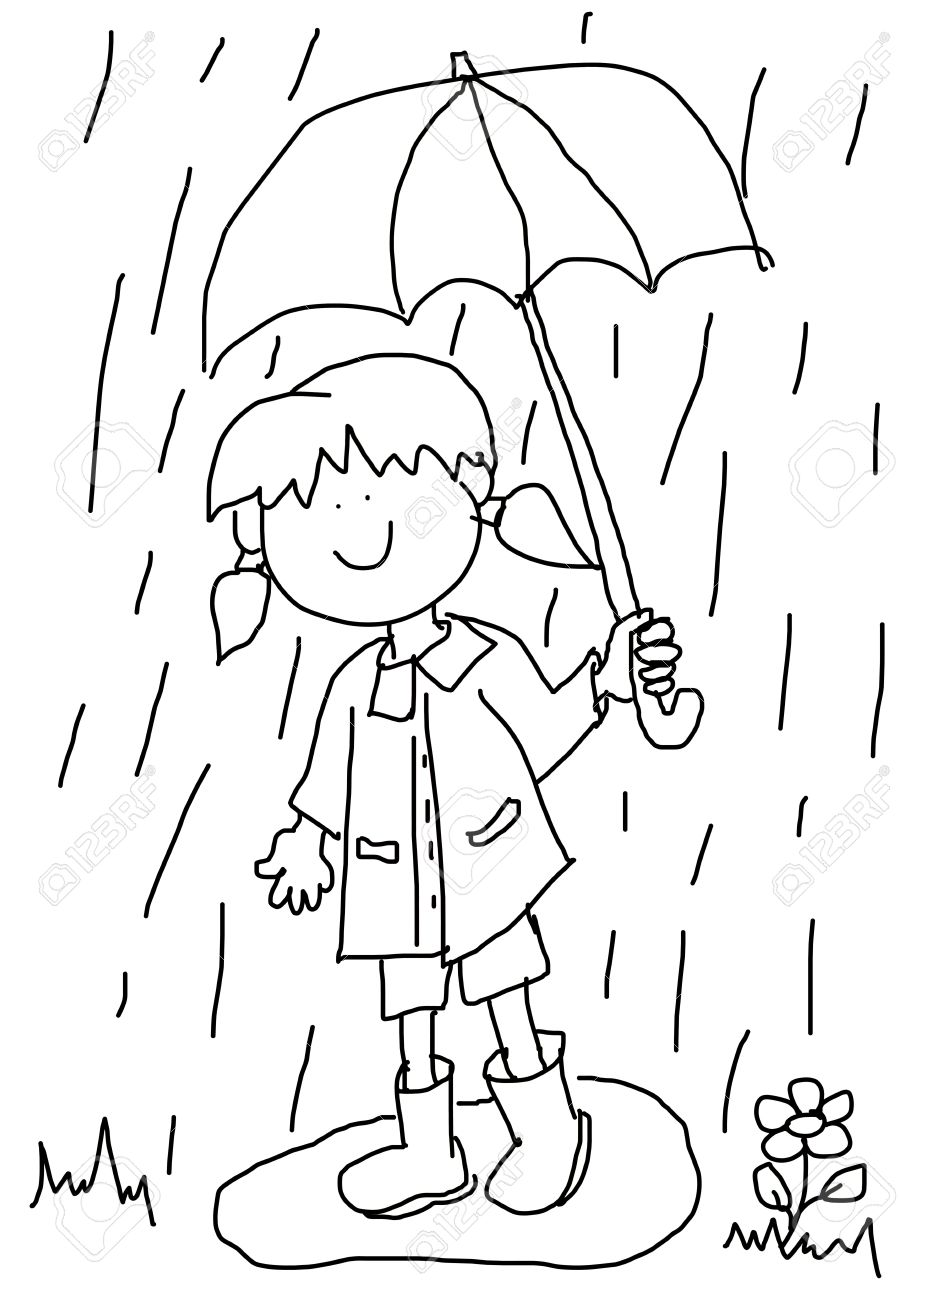 947x1300 Large Childlike Cartoon Character Little Girl With A Big Smile